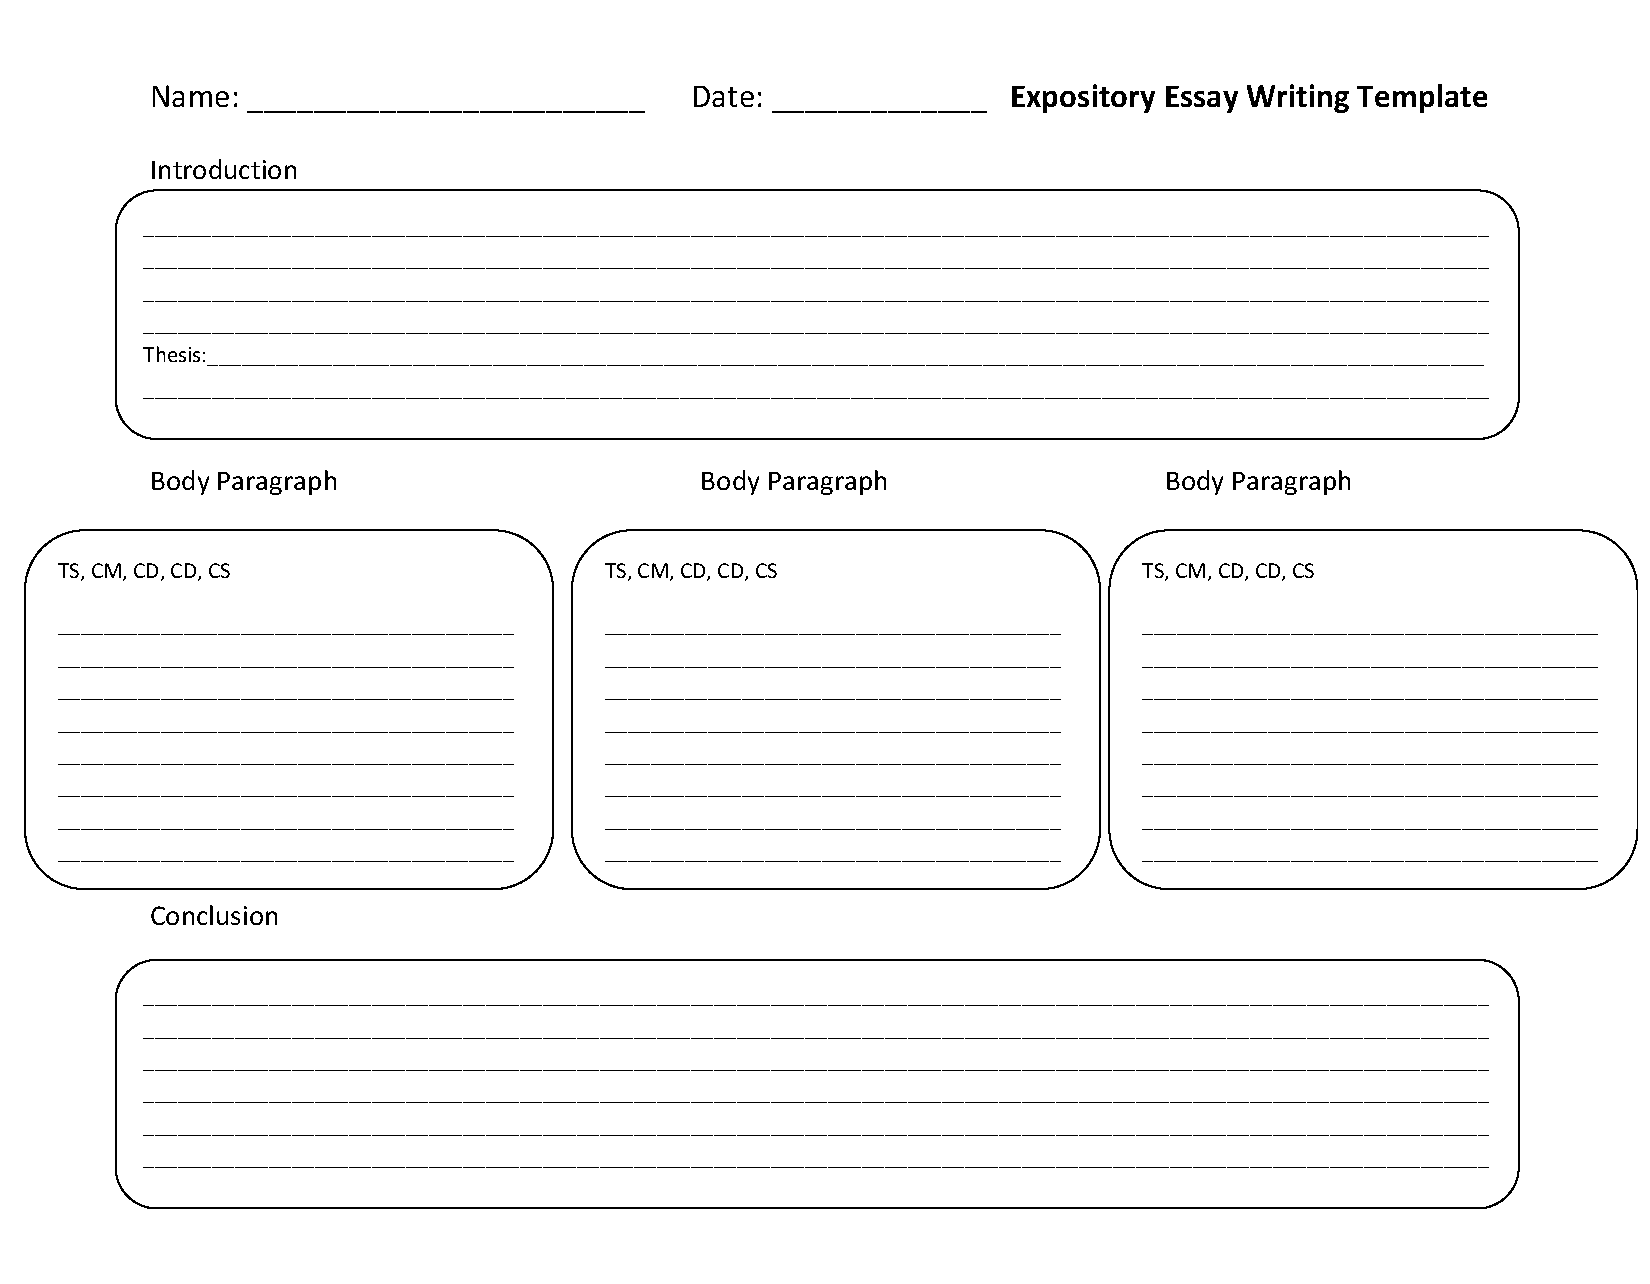 expository essay writing template worksheet | writing workshop